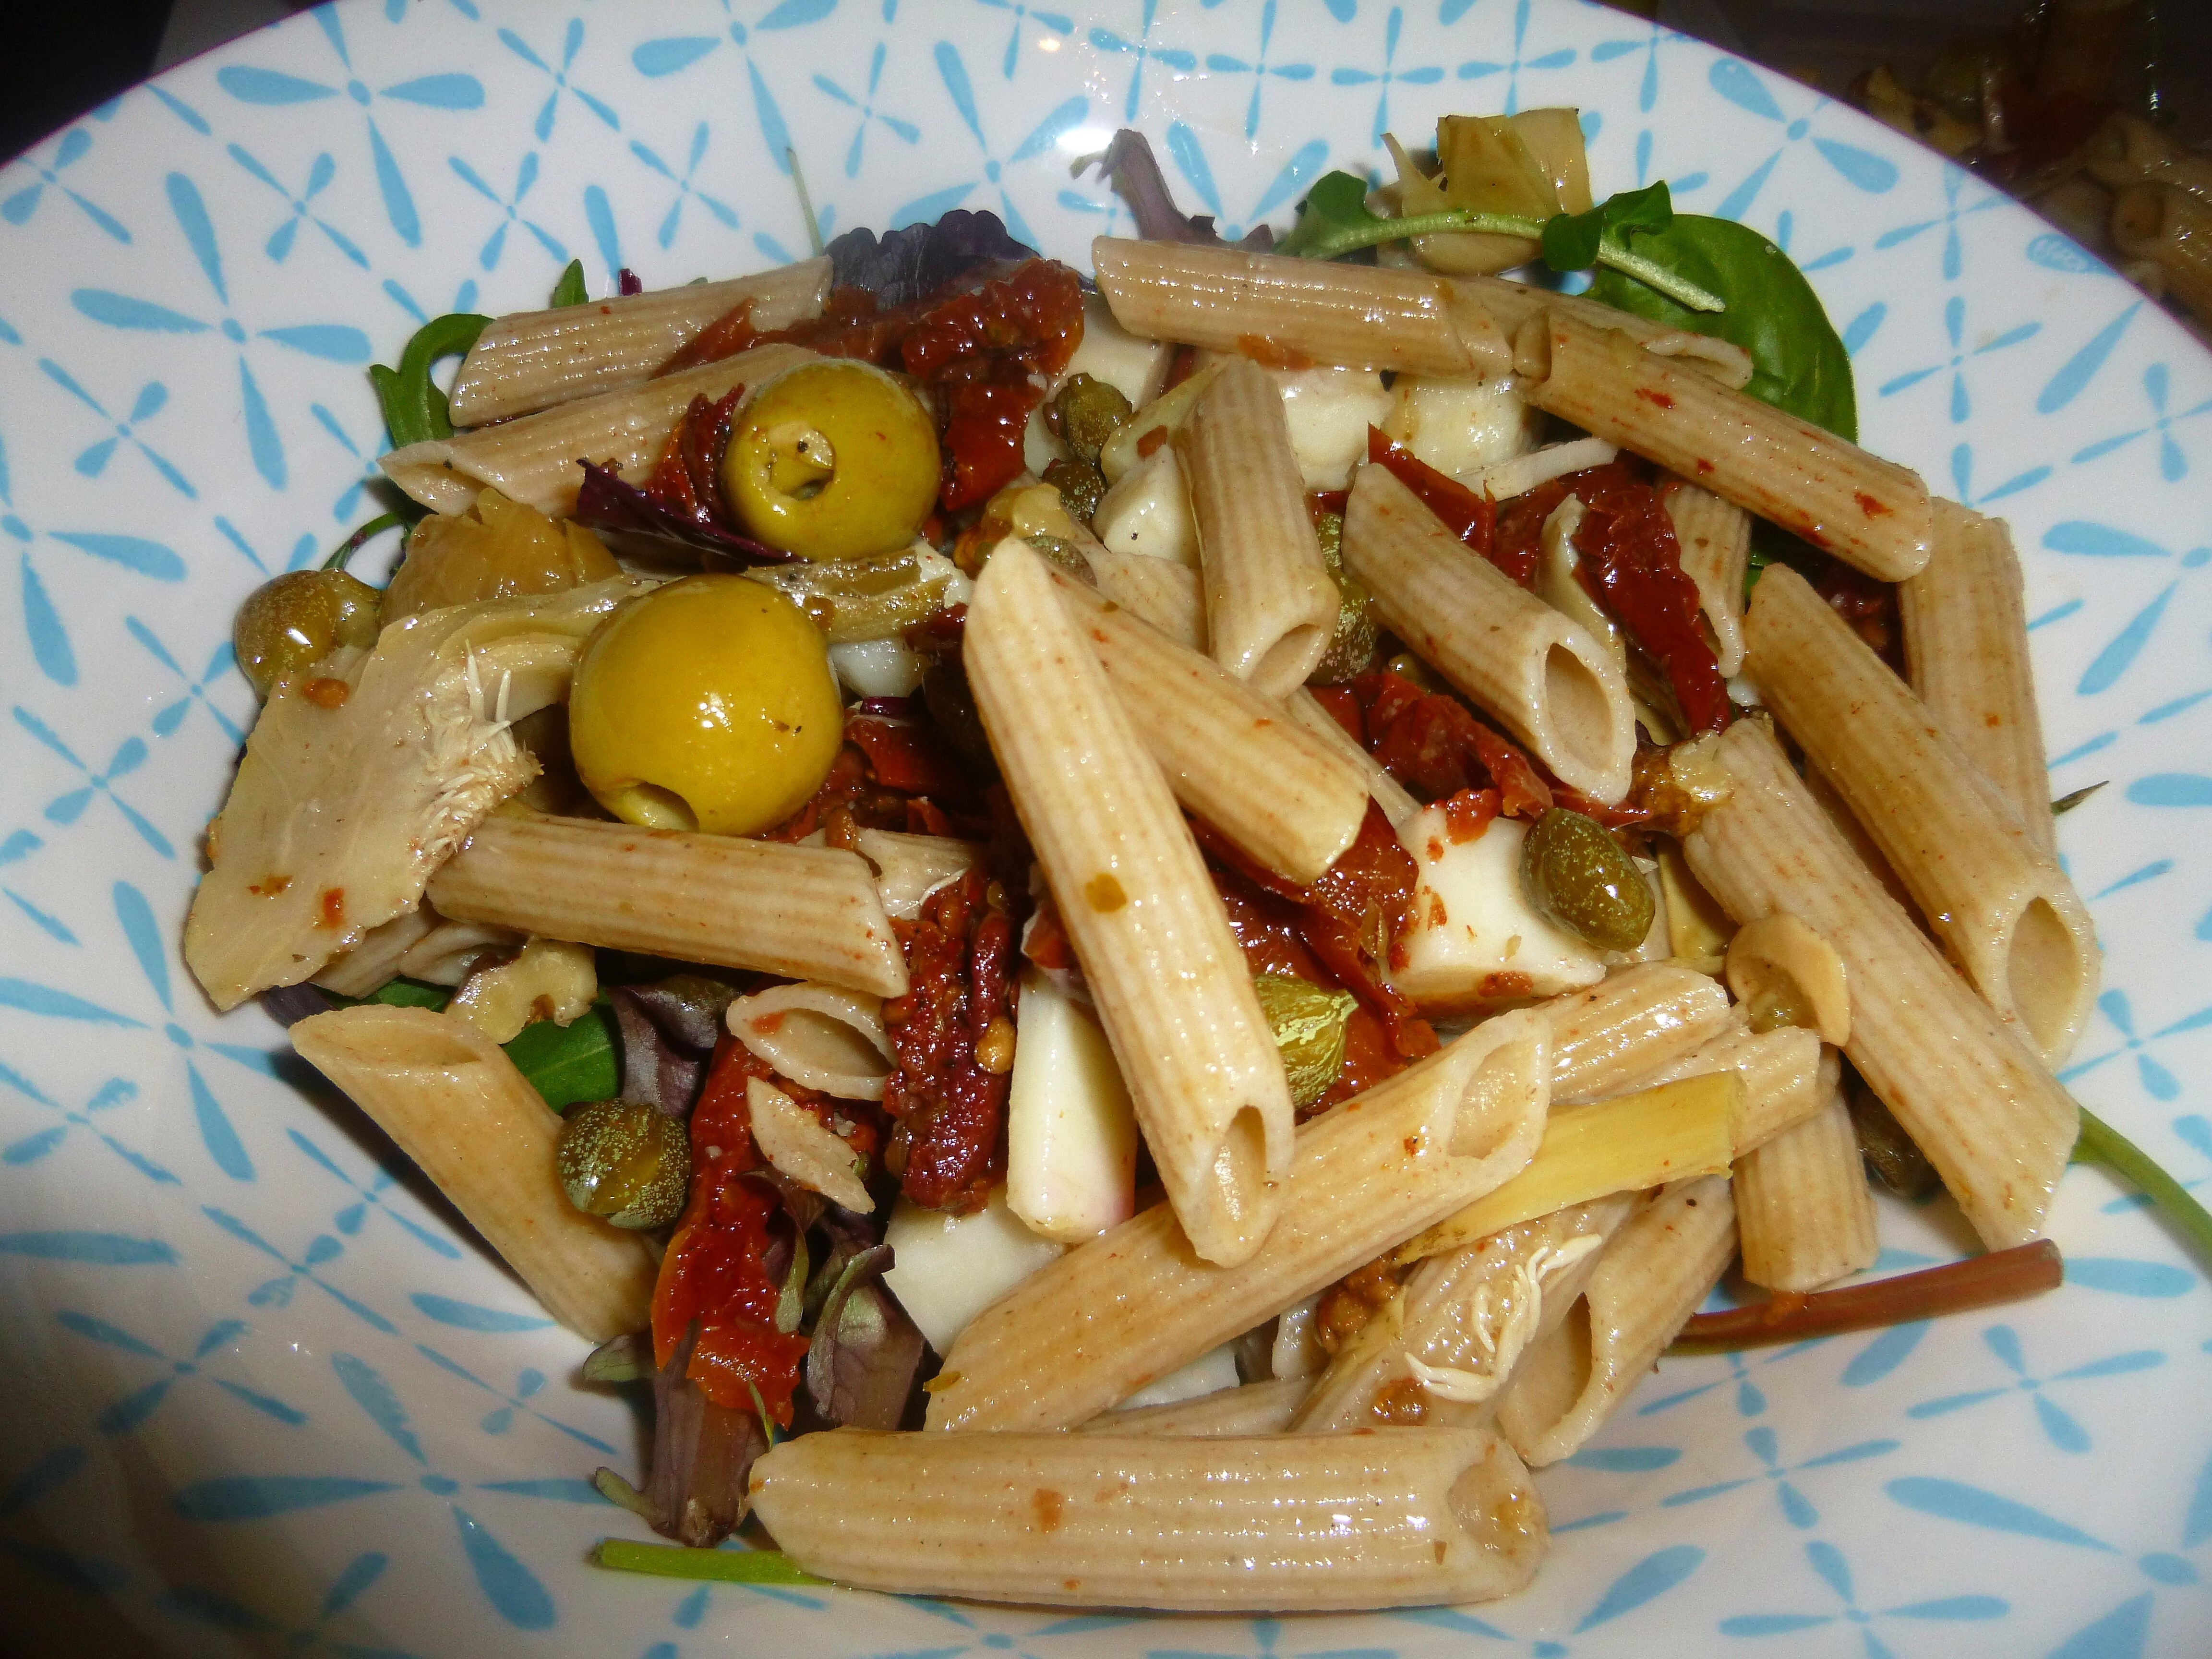 Whole Wheat Italian Pasta and Goat's Cheese Salad with a Lemon and Tarragon Dressing Recipe